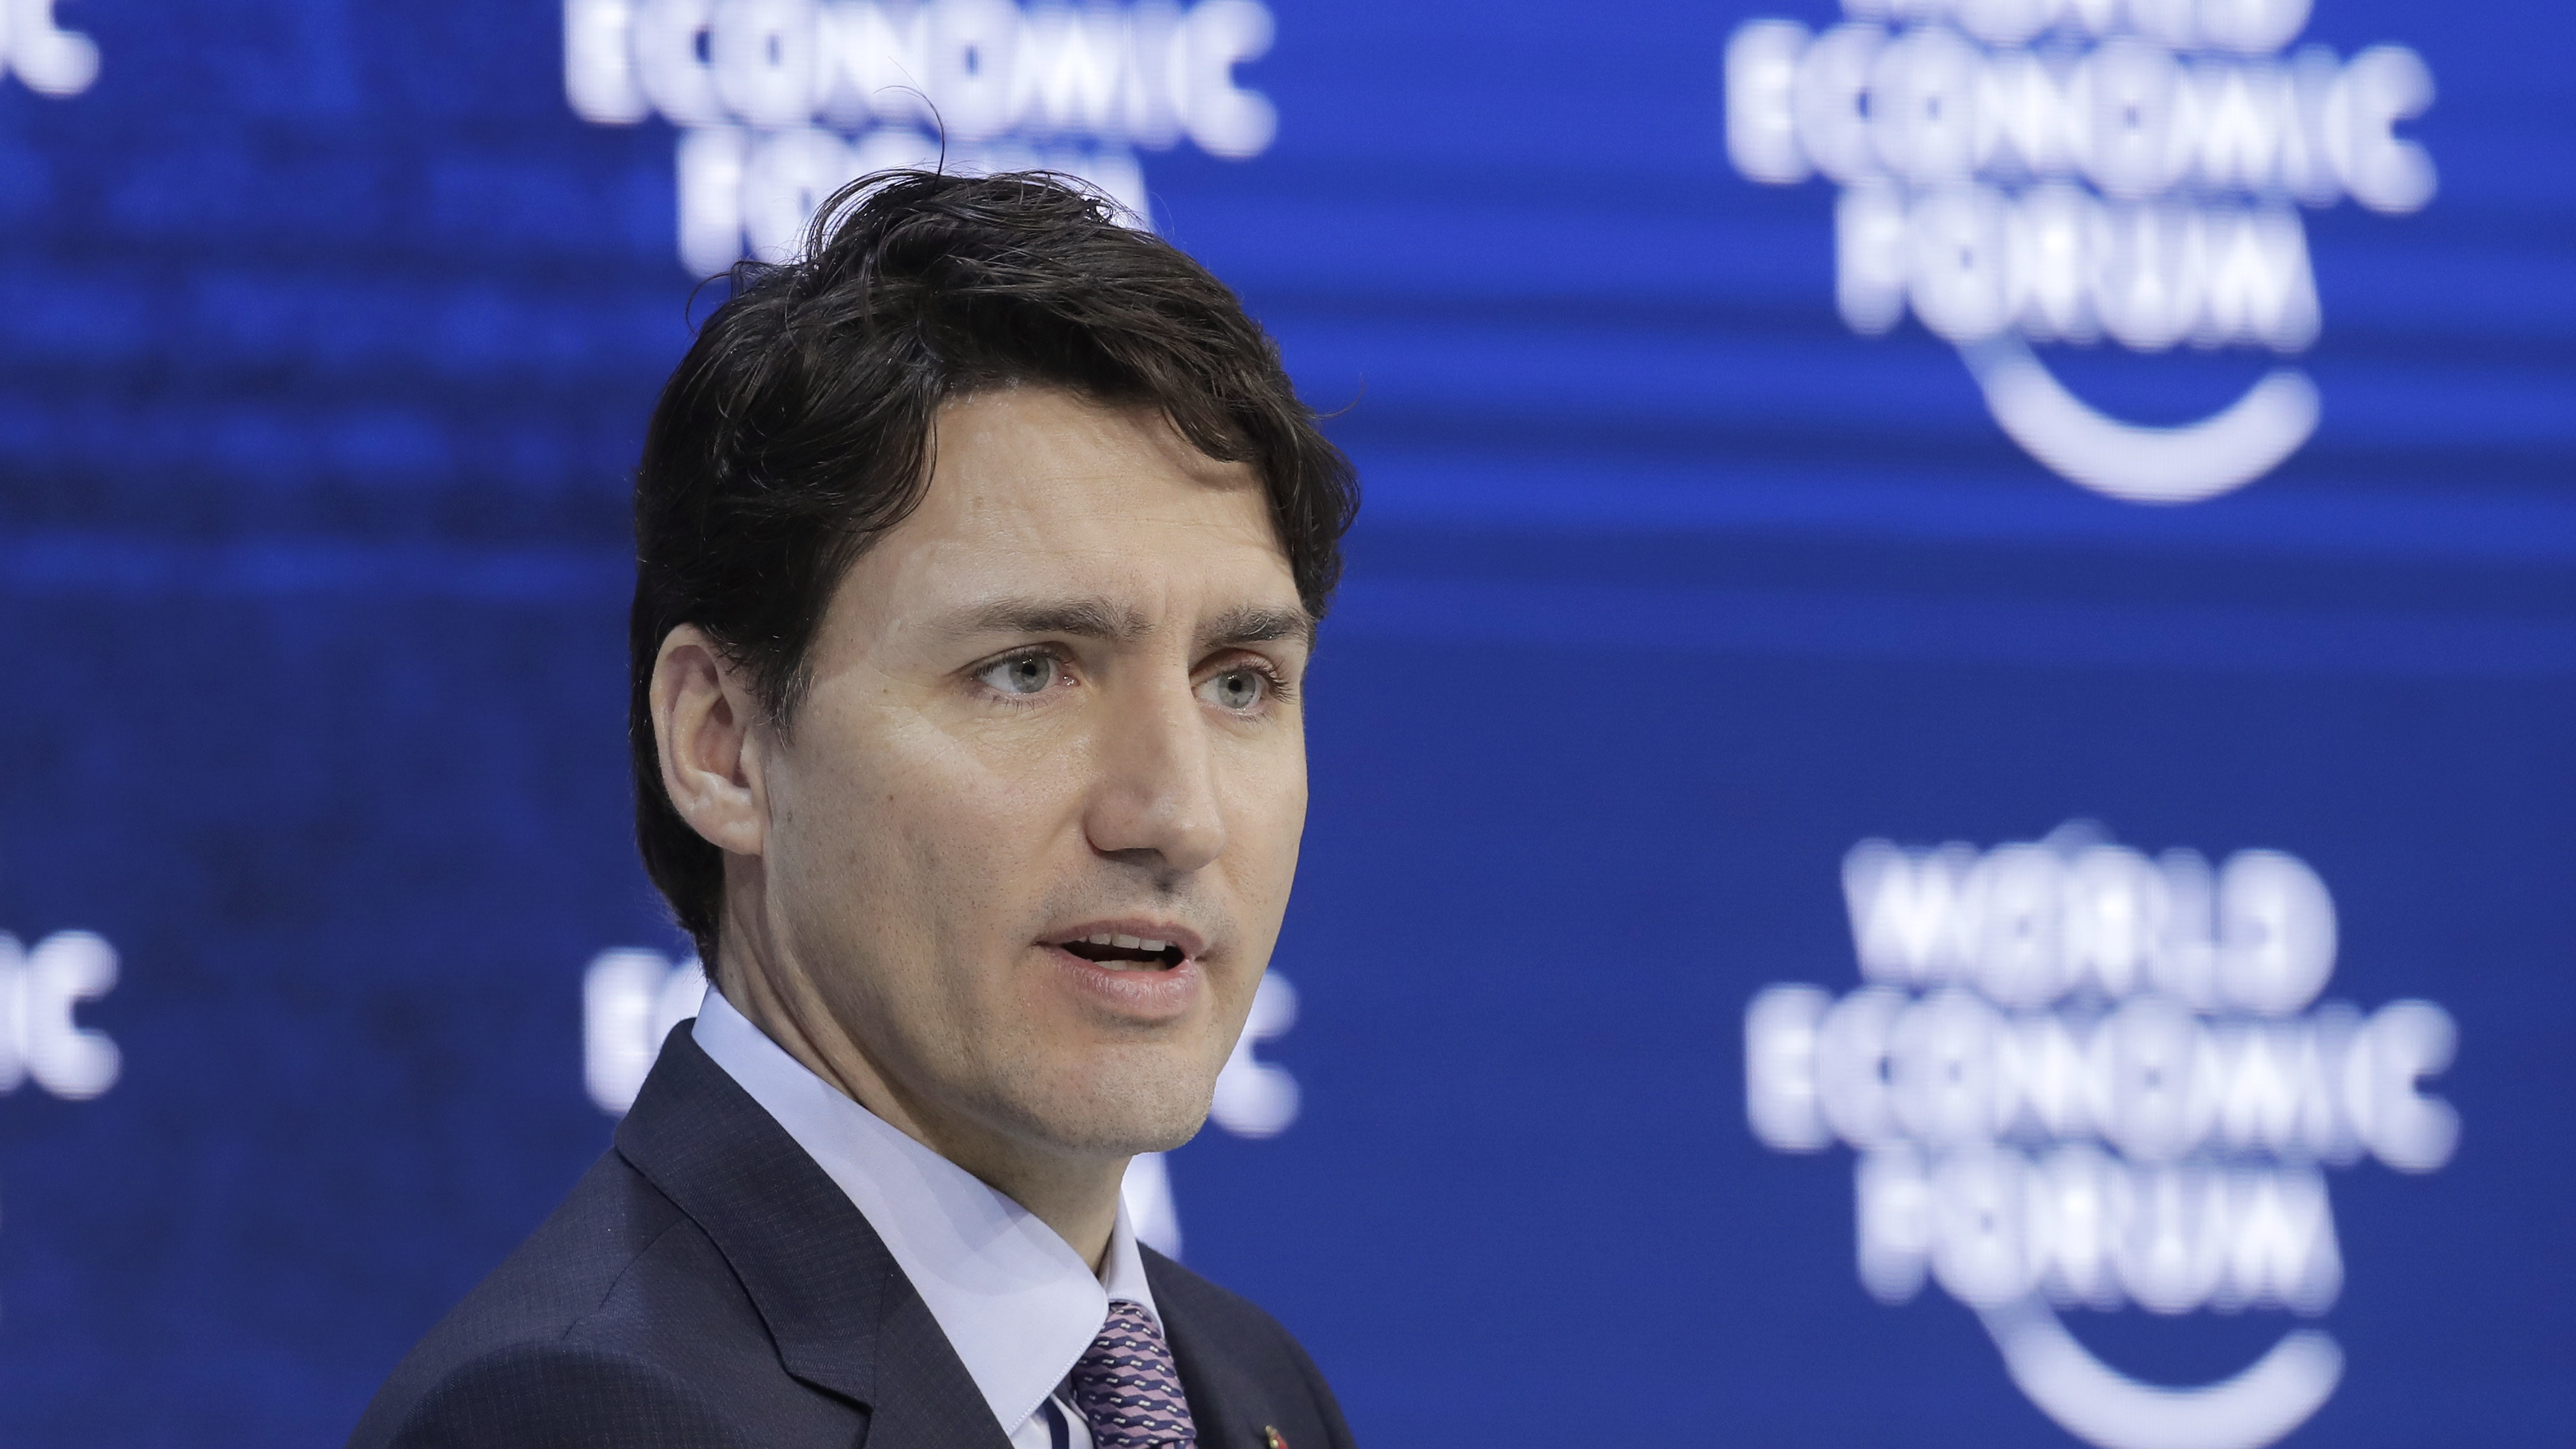 Trudeau says he is talking to premiers about Trans Mountain pipeline battle